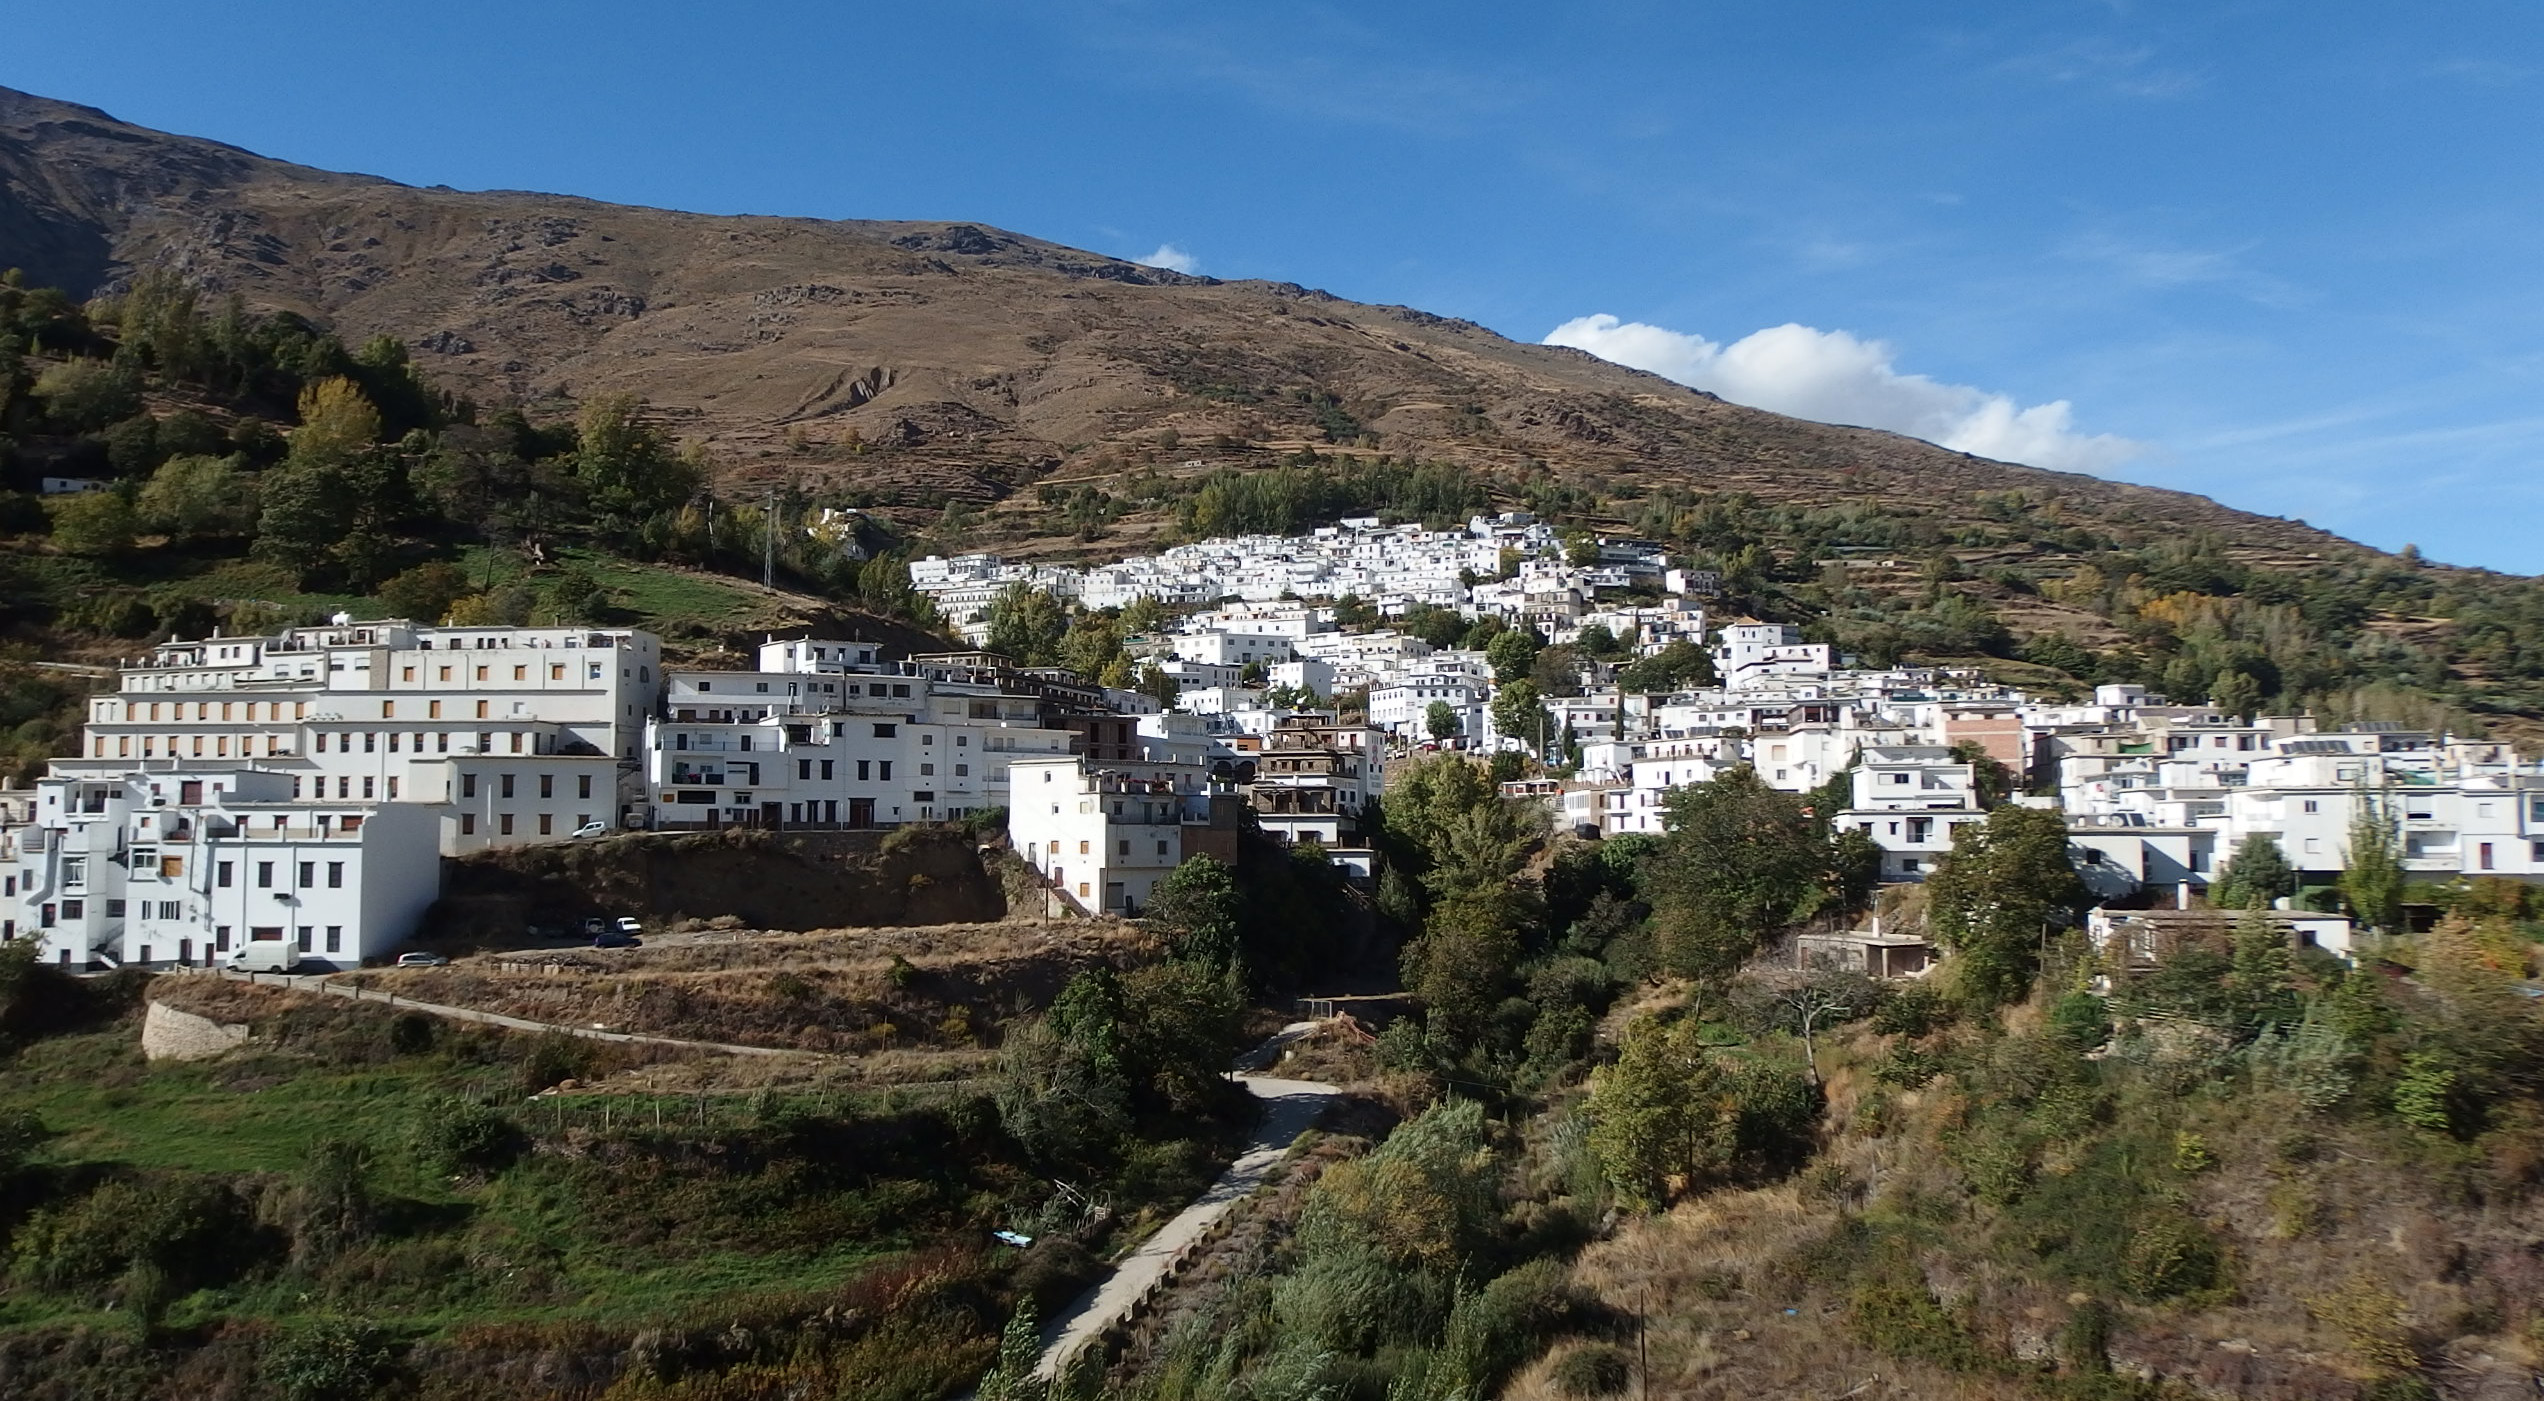 Trevélez - the highest village in Spain